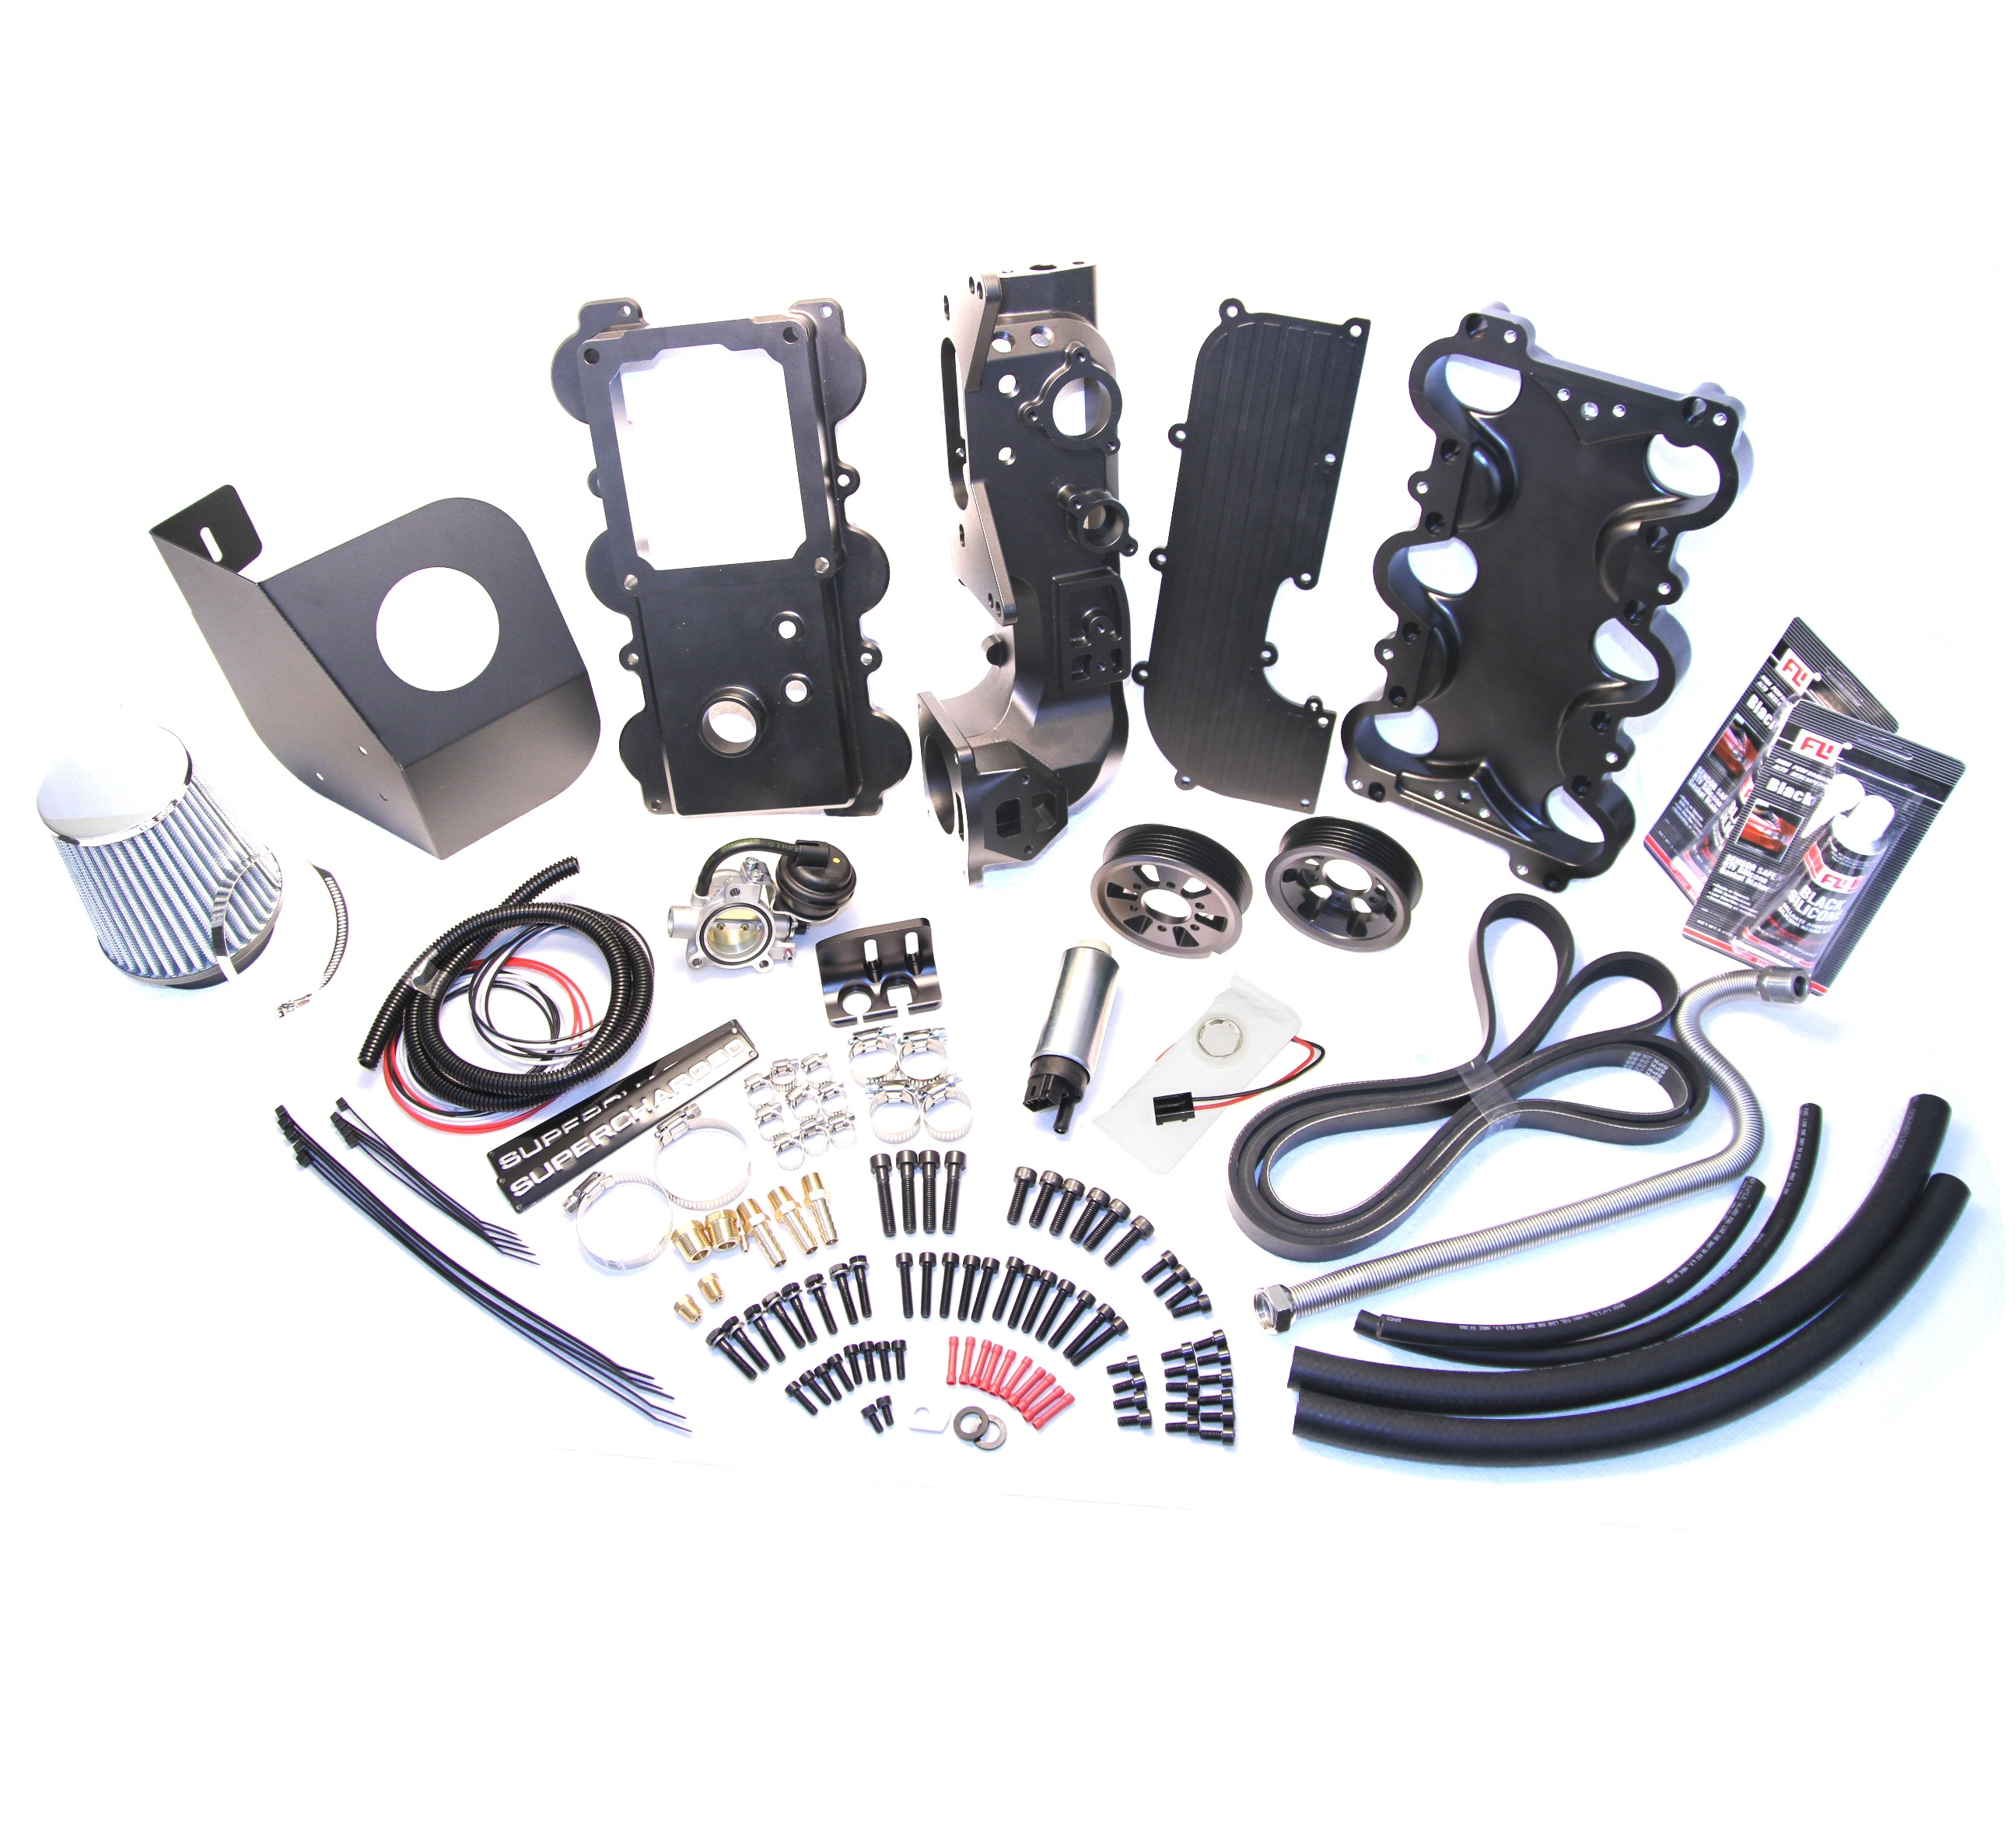 01-03 Ranger/B4000 Supercharger Installation Kit